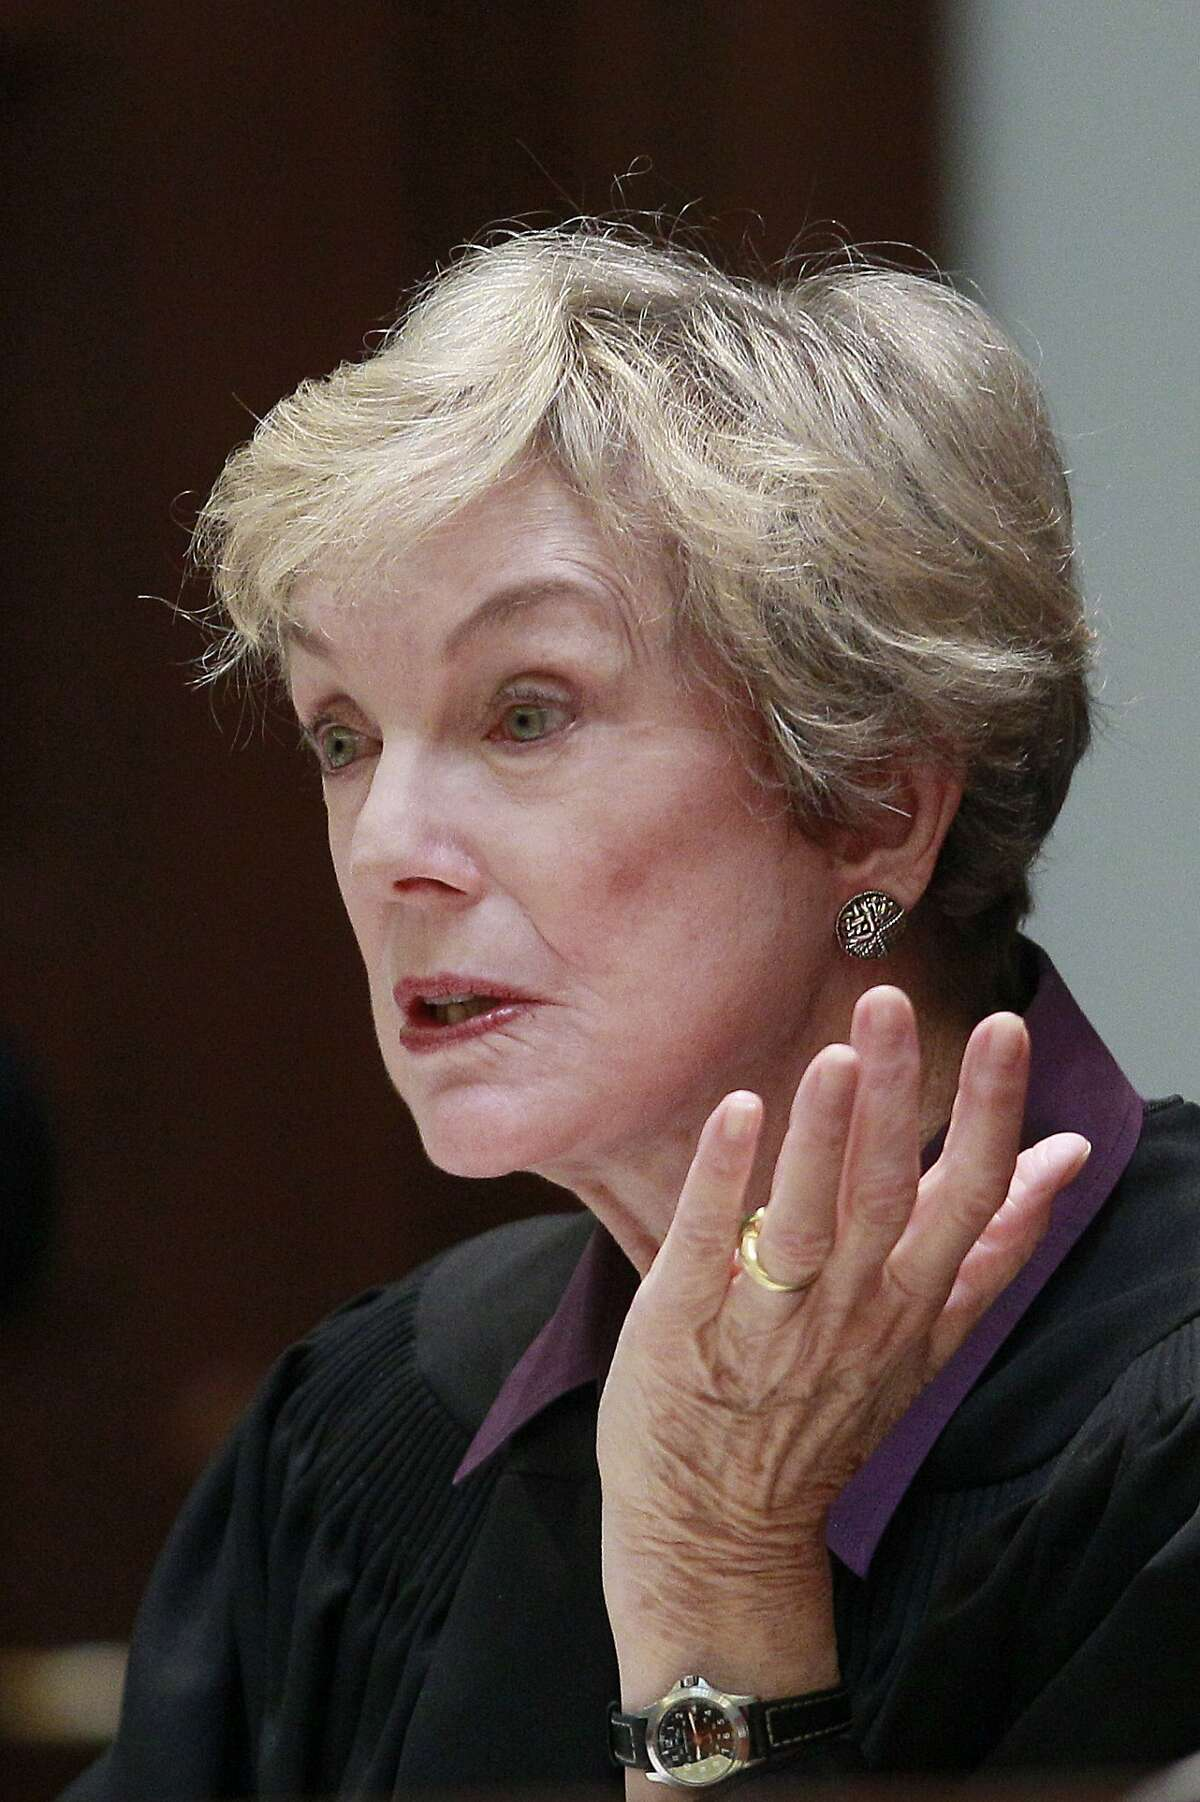 In this Nov. 10, 2011 photo, Justice Kathryn Werdegar is shown at the California Supreme Court in San Francisco. The court announced Wednesday, March 8, 2017, that Werdegar will step down Aug. 31, 2017. Republican Gov. Pete Wilson appointed Werdegar to the state's high court in 1994. (AP Photo/Jeff Chiu)